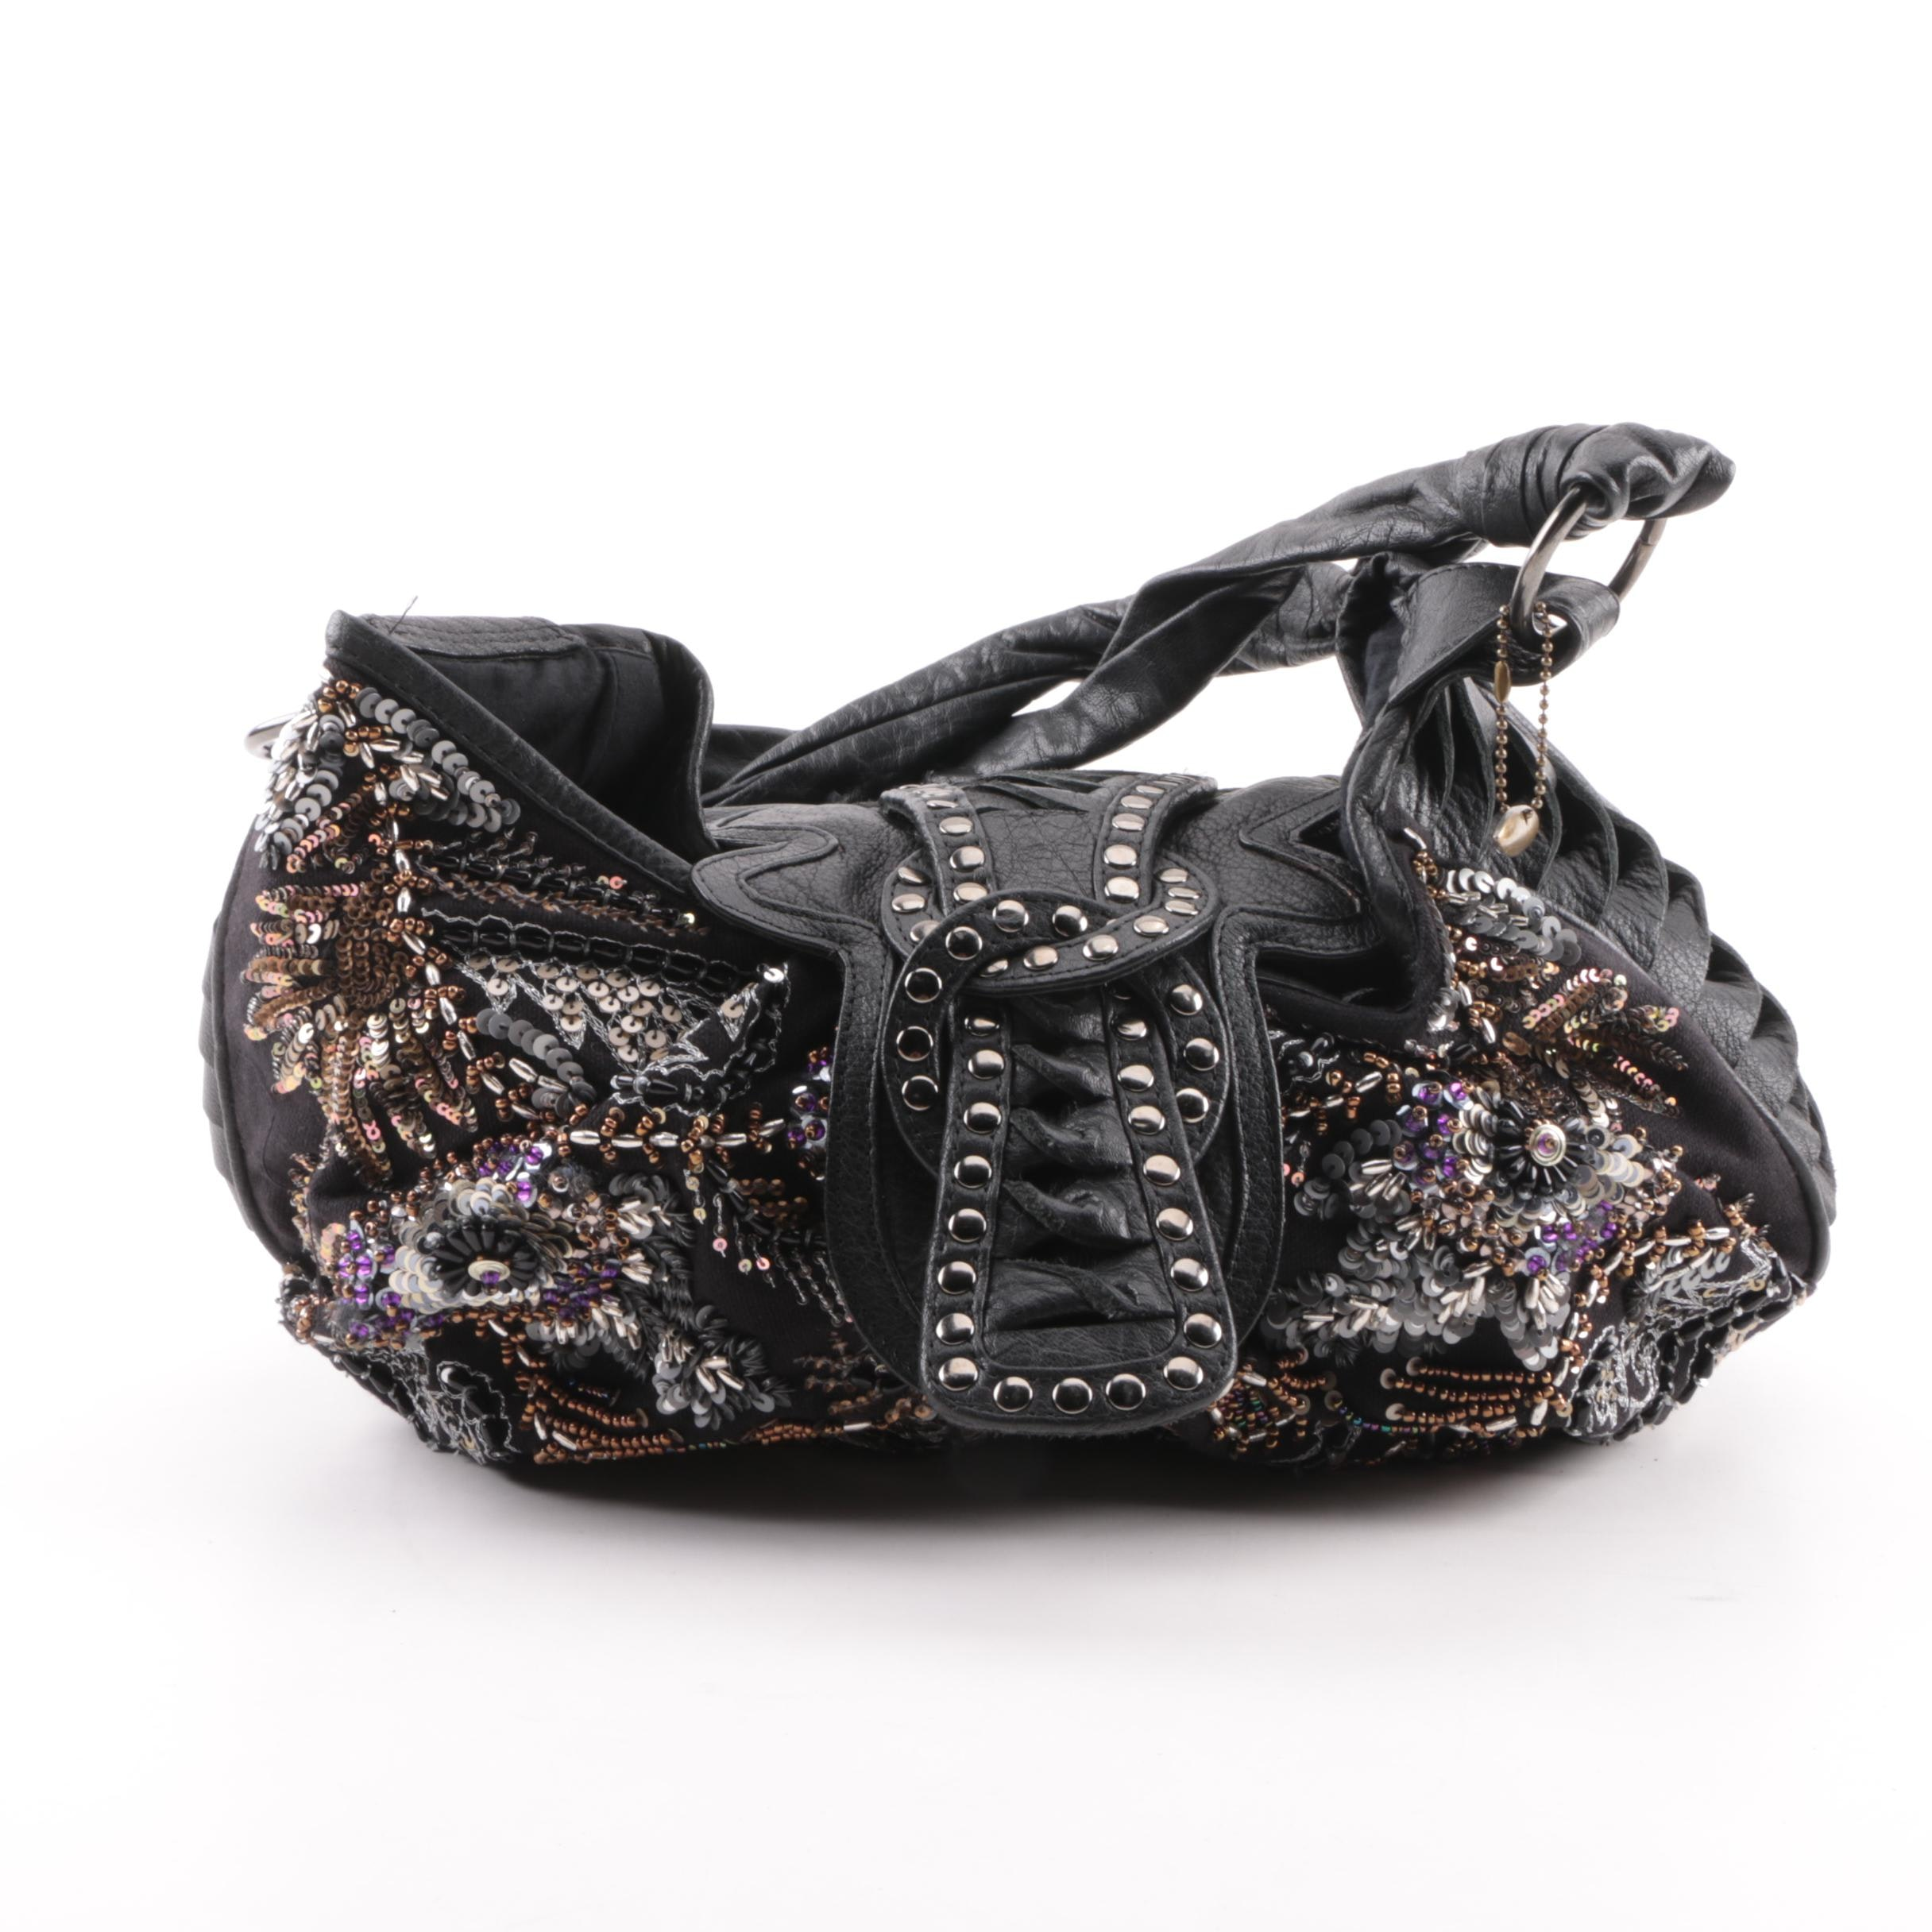 Mary Frances of San Francisco Embellished Black Leather Hobo Bag